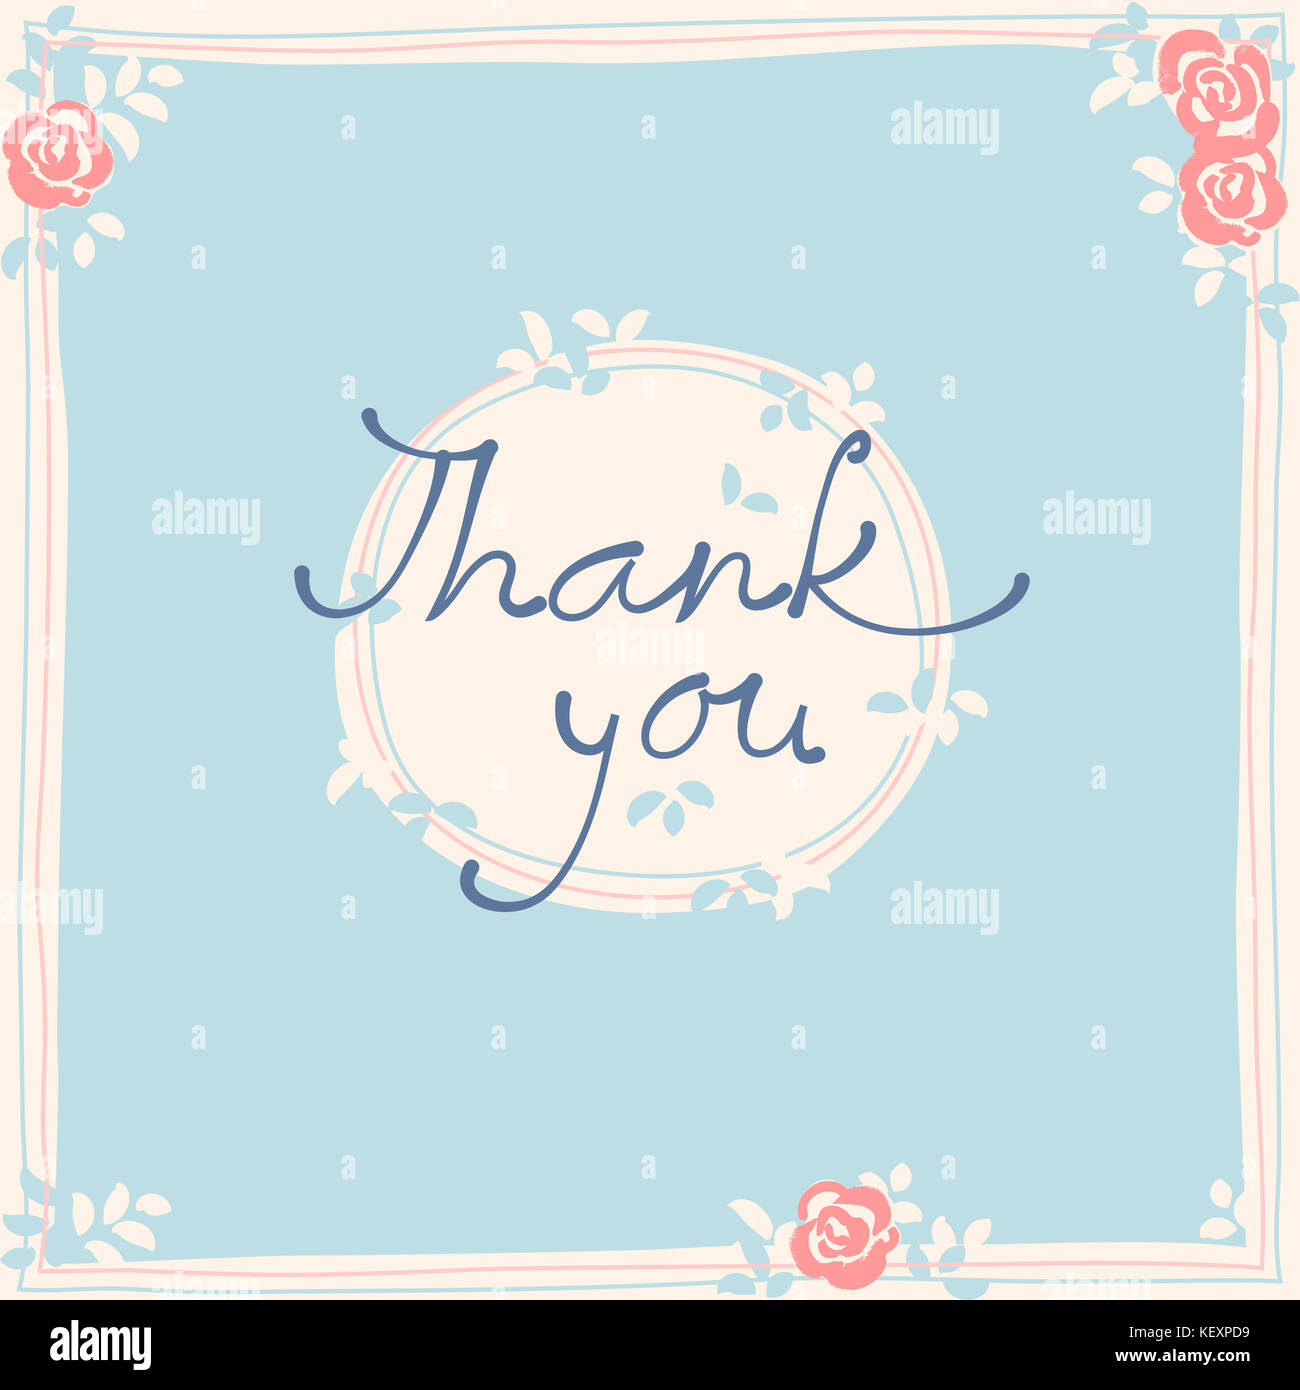 Thank you card design template simple greeting card elegant note thank you card design template simple greeting card elegant note label thanksgiving symbol sign kristyandbryce Gallery